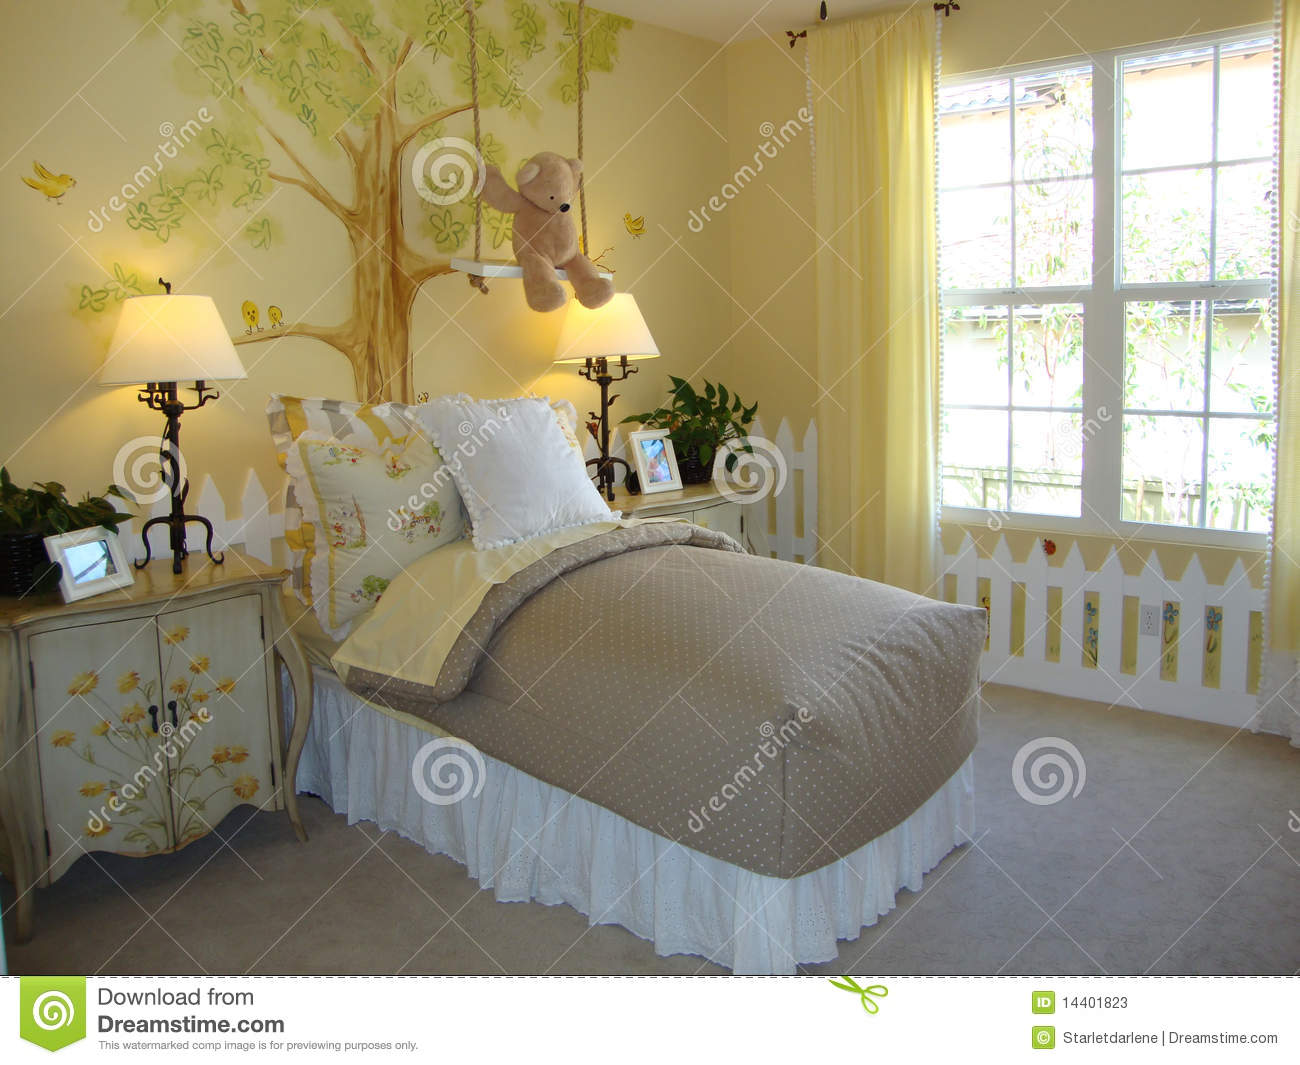 beautiful childs bedroom stock photos - image: 14401823